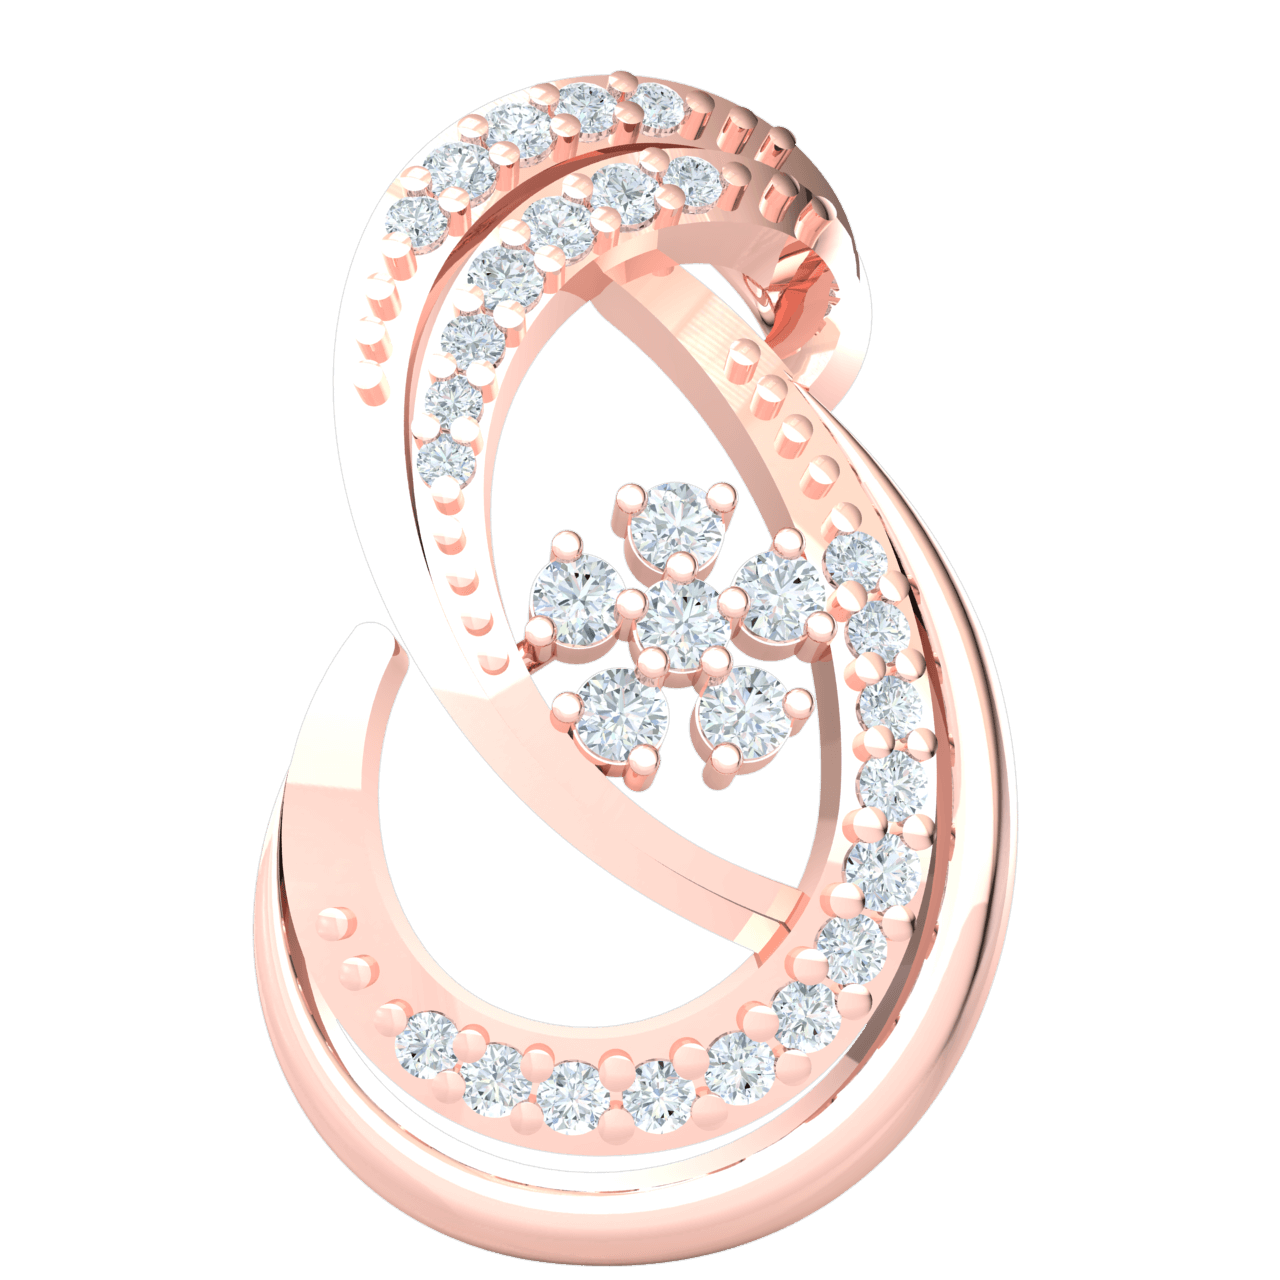 0.24 Ctw Gorgeous And Majestic This Real Artistic Infinity Symbol Real Pendant Is Covered In An Array Of White Diamonds in JK I1 10 kt Gold